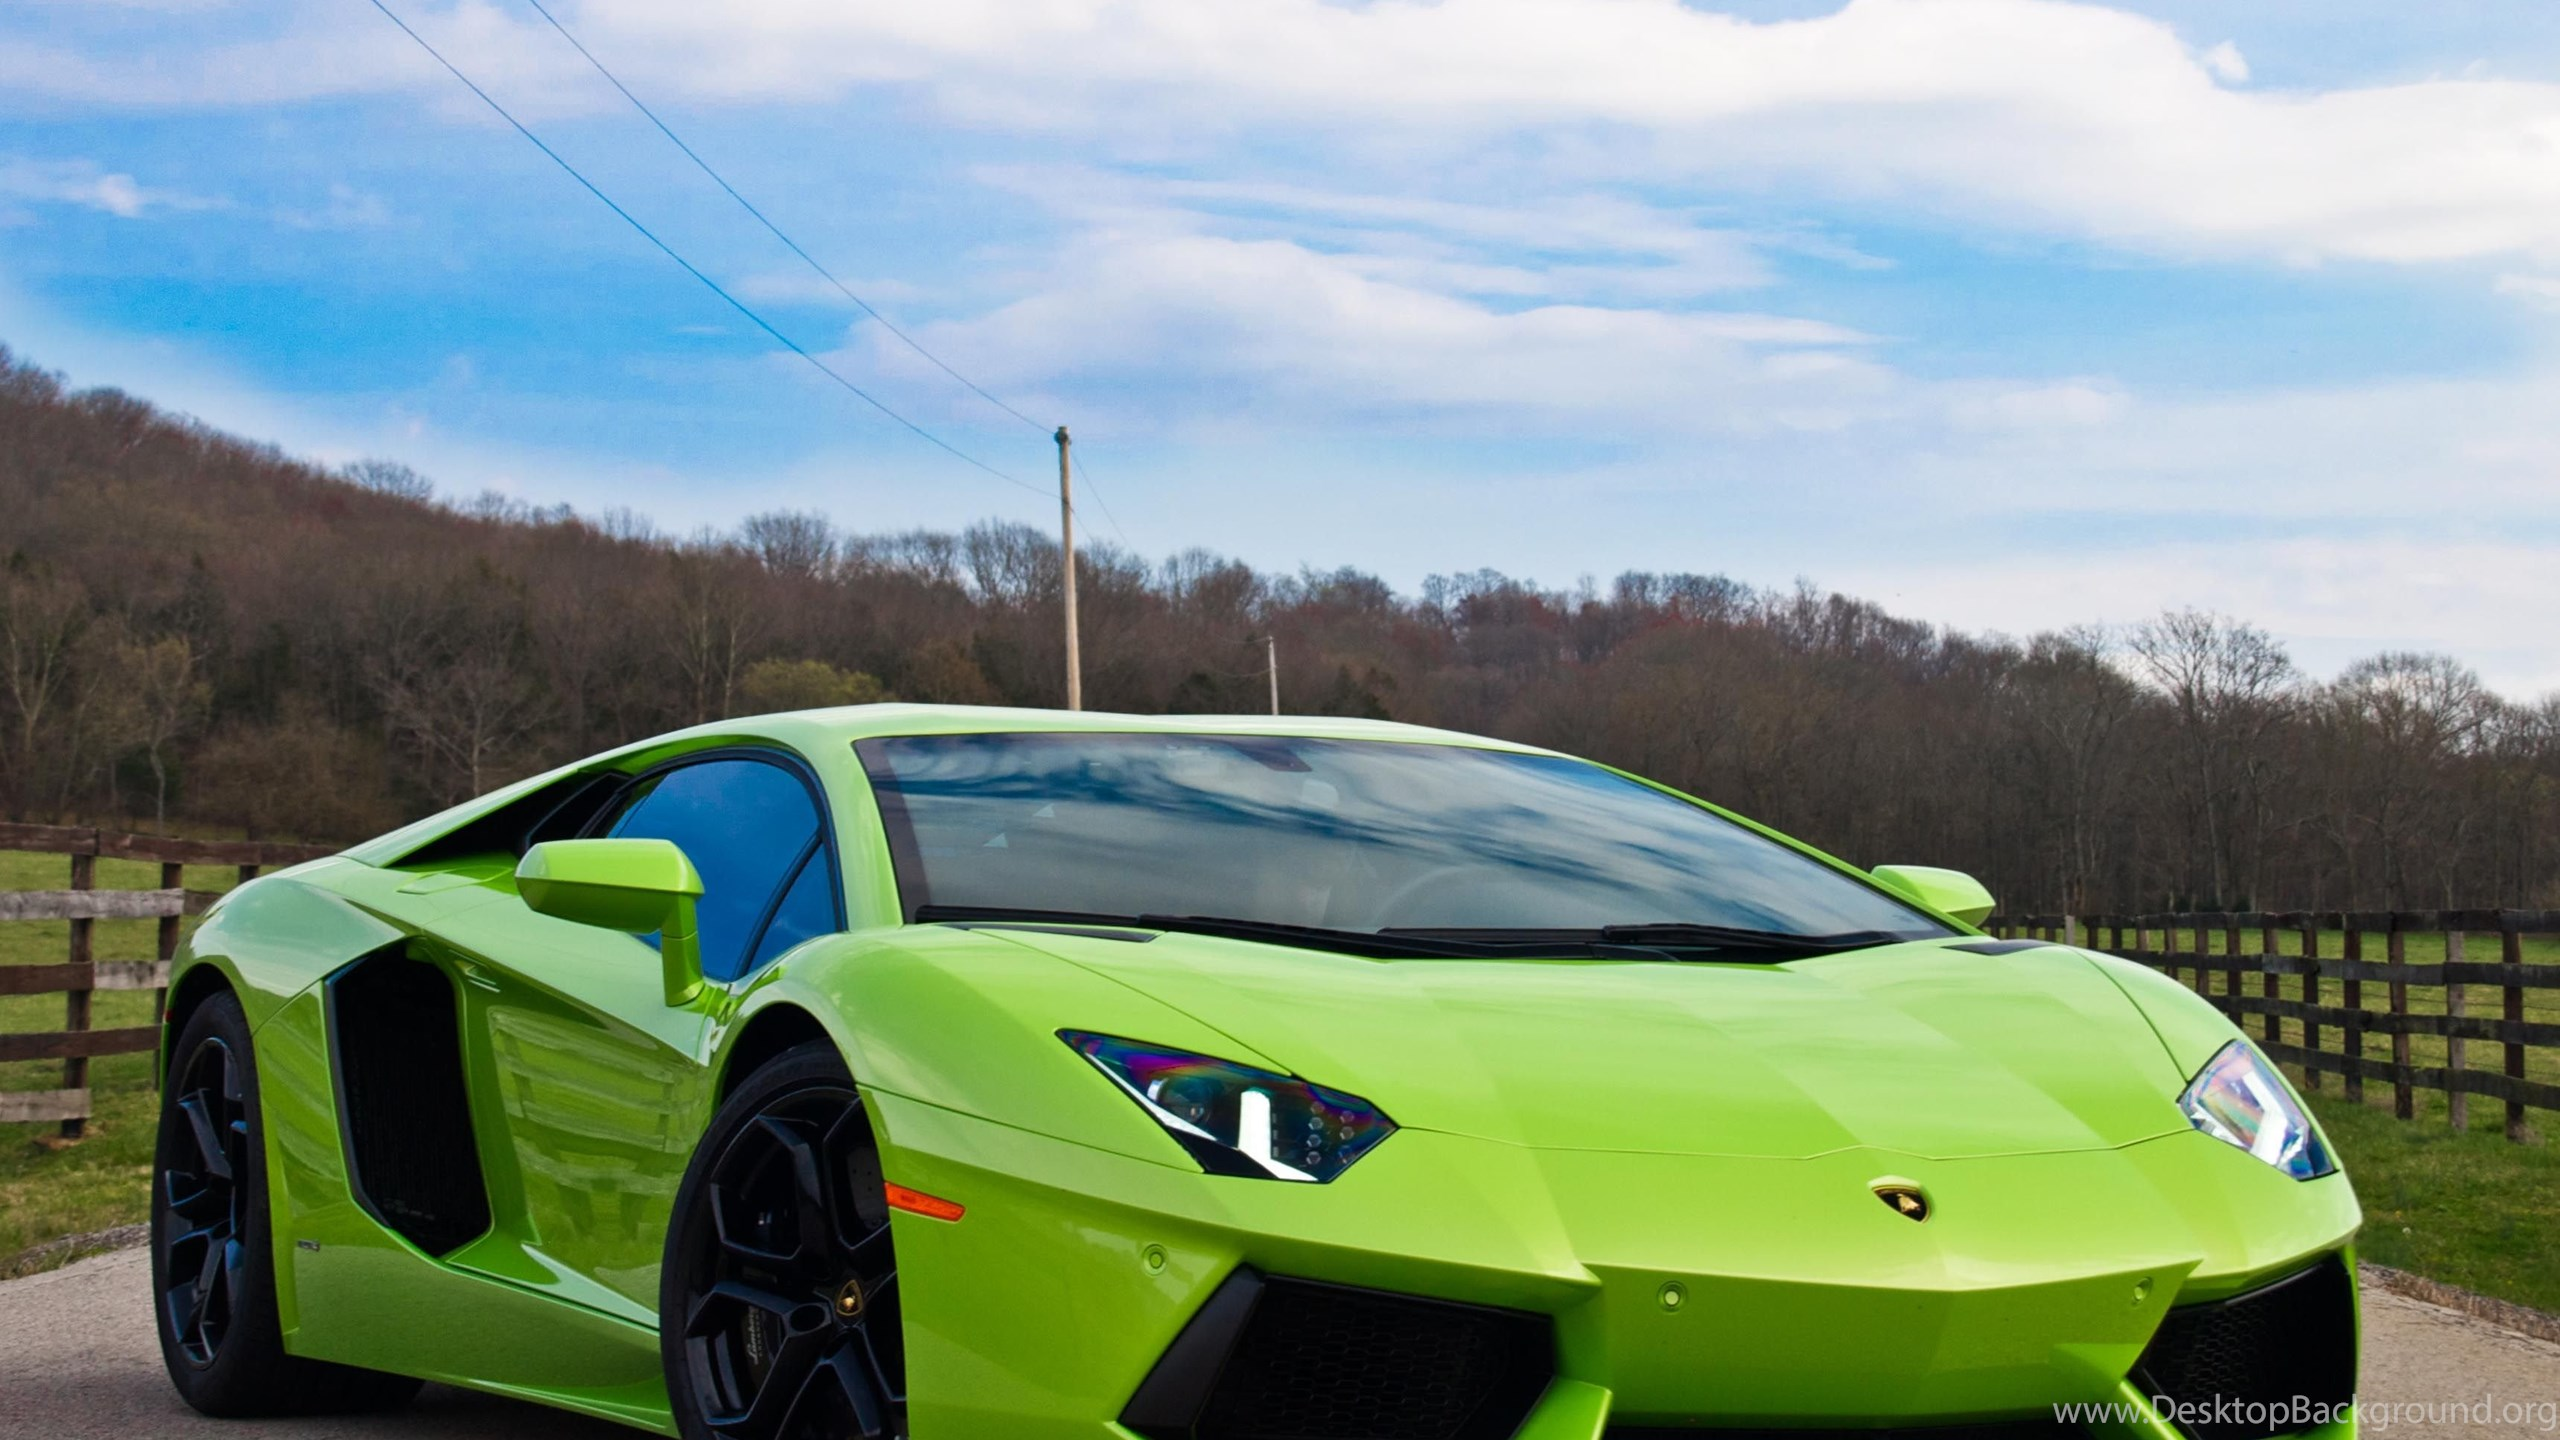 2012 Green Lamborghini Aventador Lp700 4 Car Wallpapers Hi Desktop Background